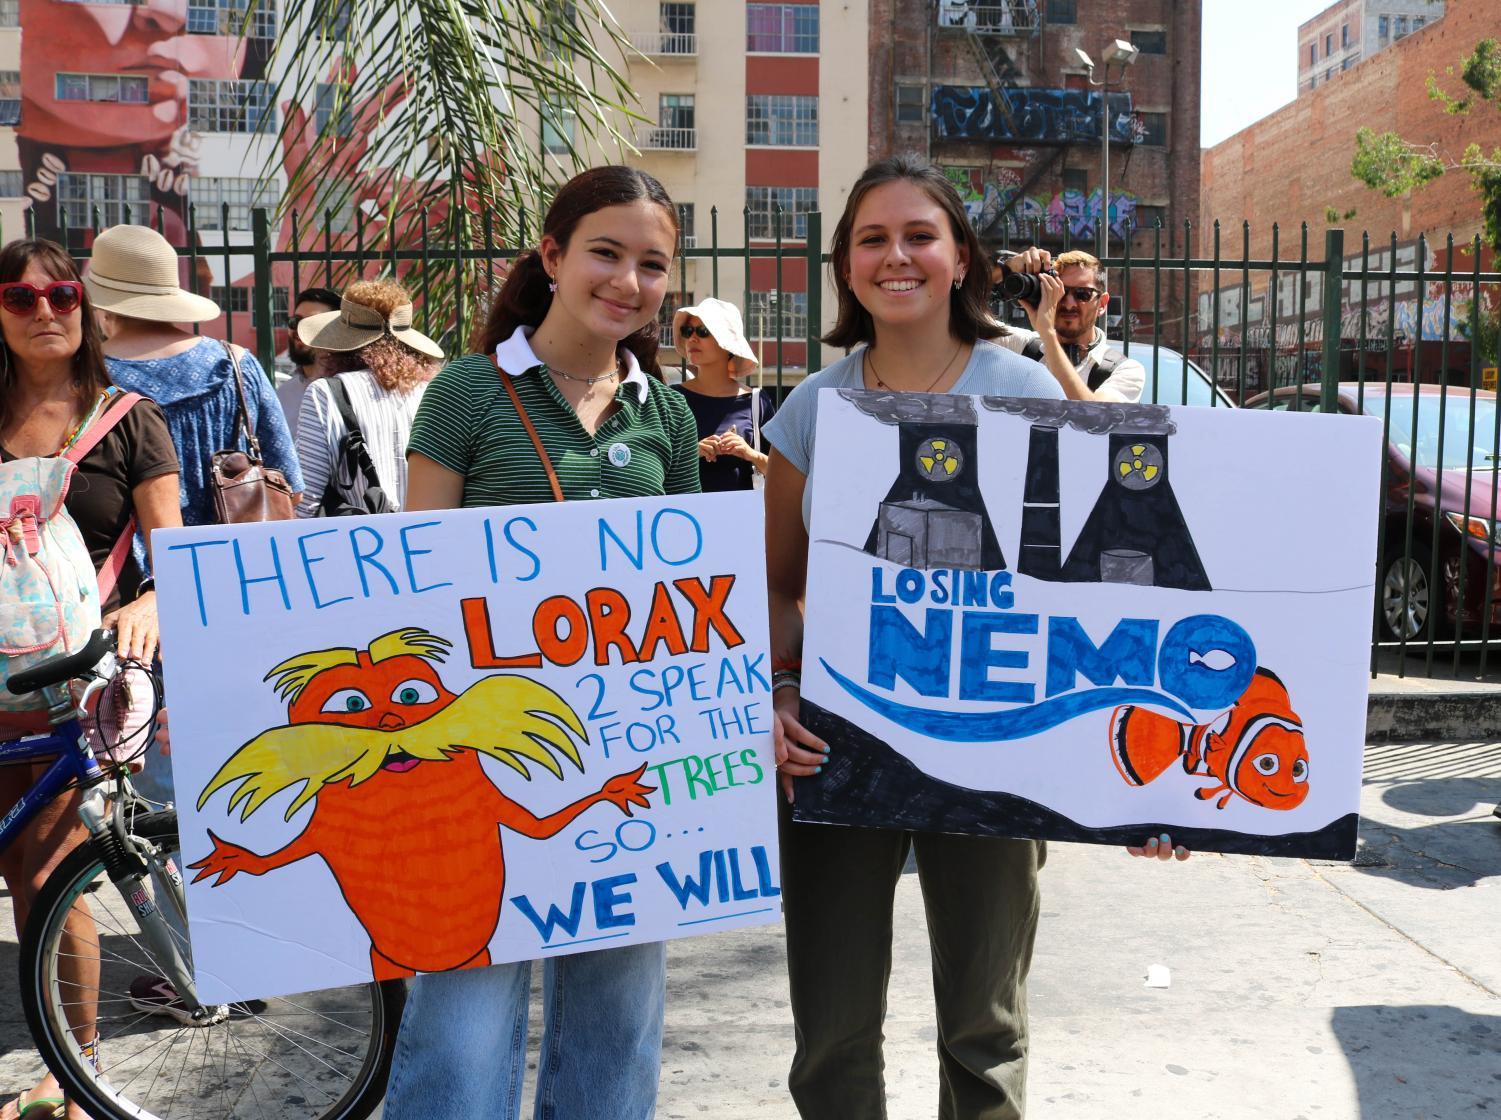 """""""It would be stupid if teachers don't value what's happening in the real world,"""" Madi Kcase said, holding a hand-drawn sign of the Lorax. Her friend, Bianca Richmond, holds a sign showing Nemo from the popular Pixar film as a way to express their support for the Global Climate Strike on Sept. 20 in Downtown LA. Photo credit: Ivan Salinas"""